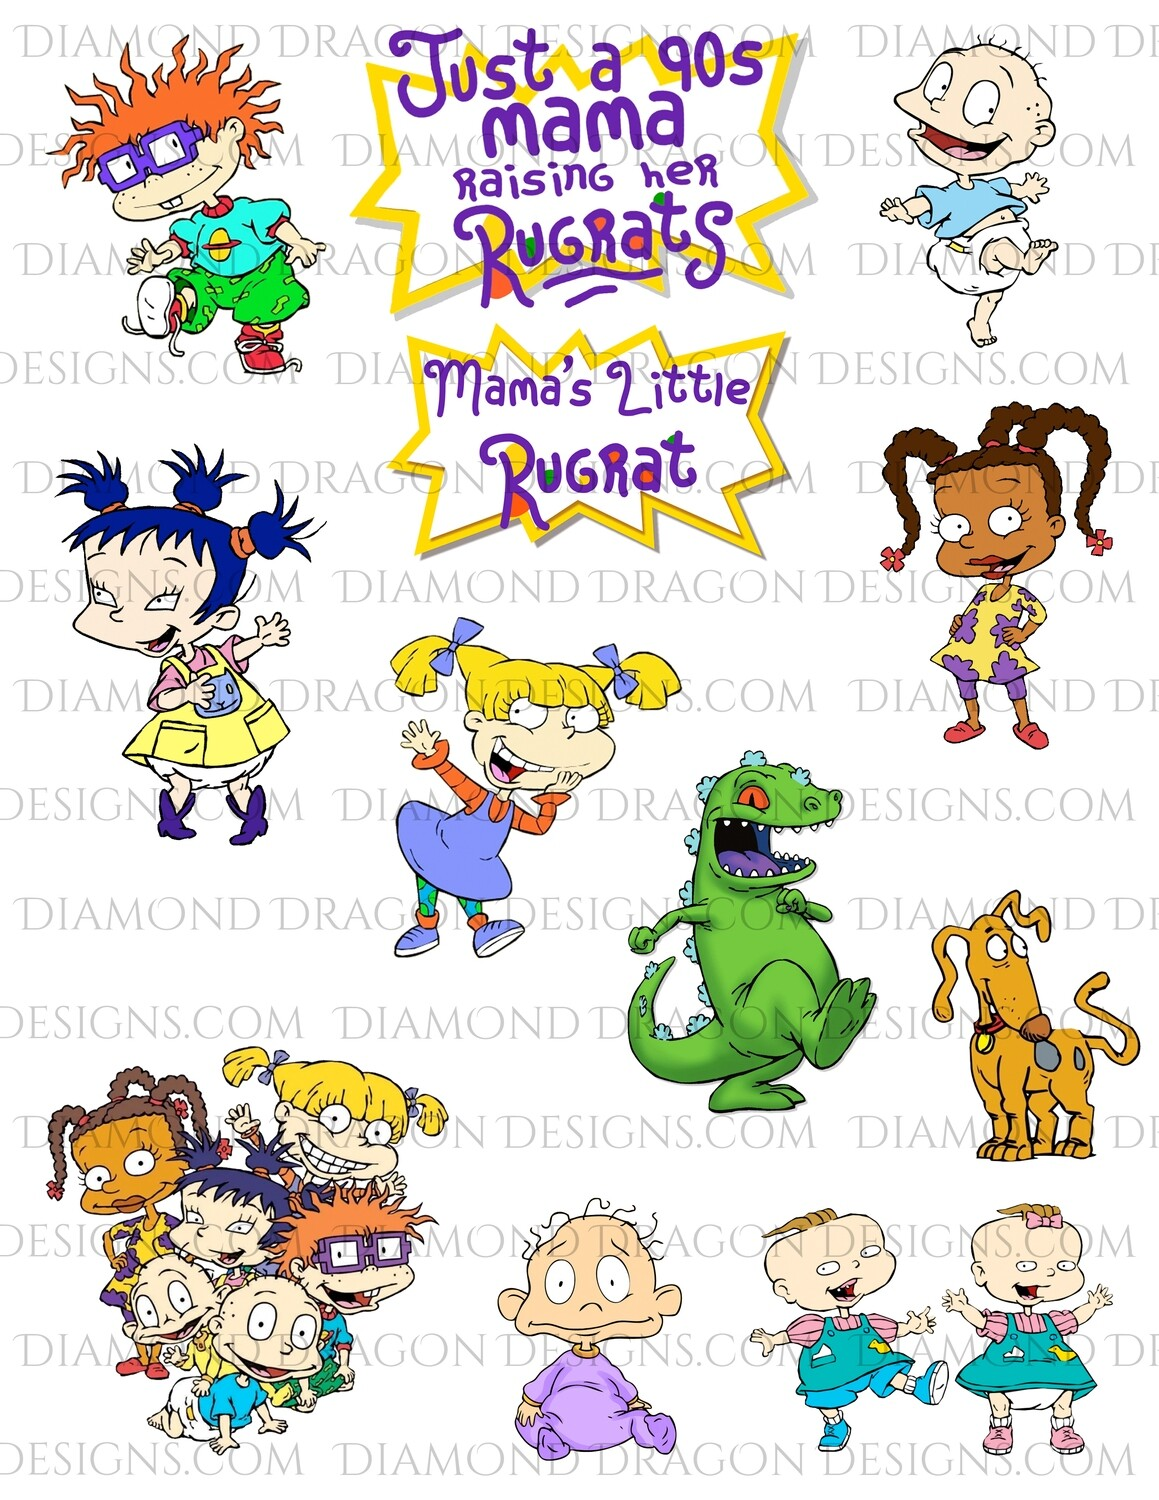 TV - Rugrats Inspired, Collage 2, Full Page, Waterslides